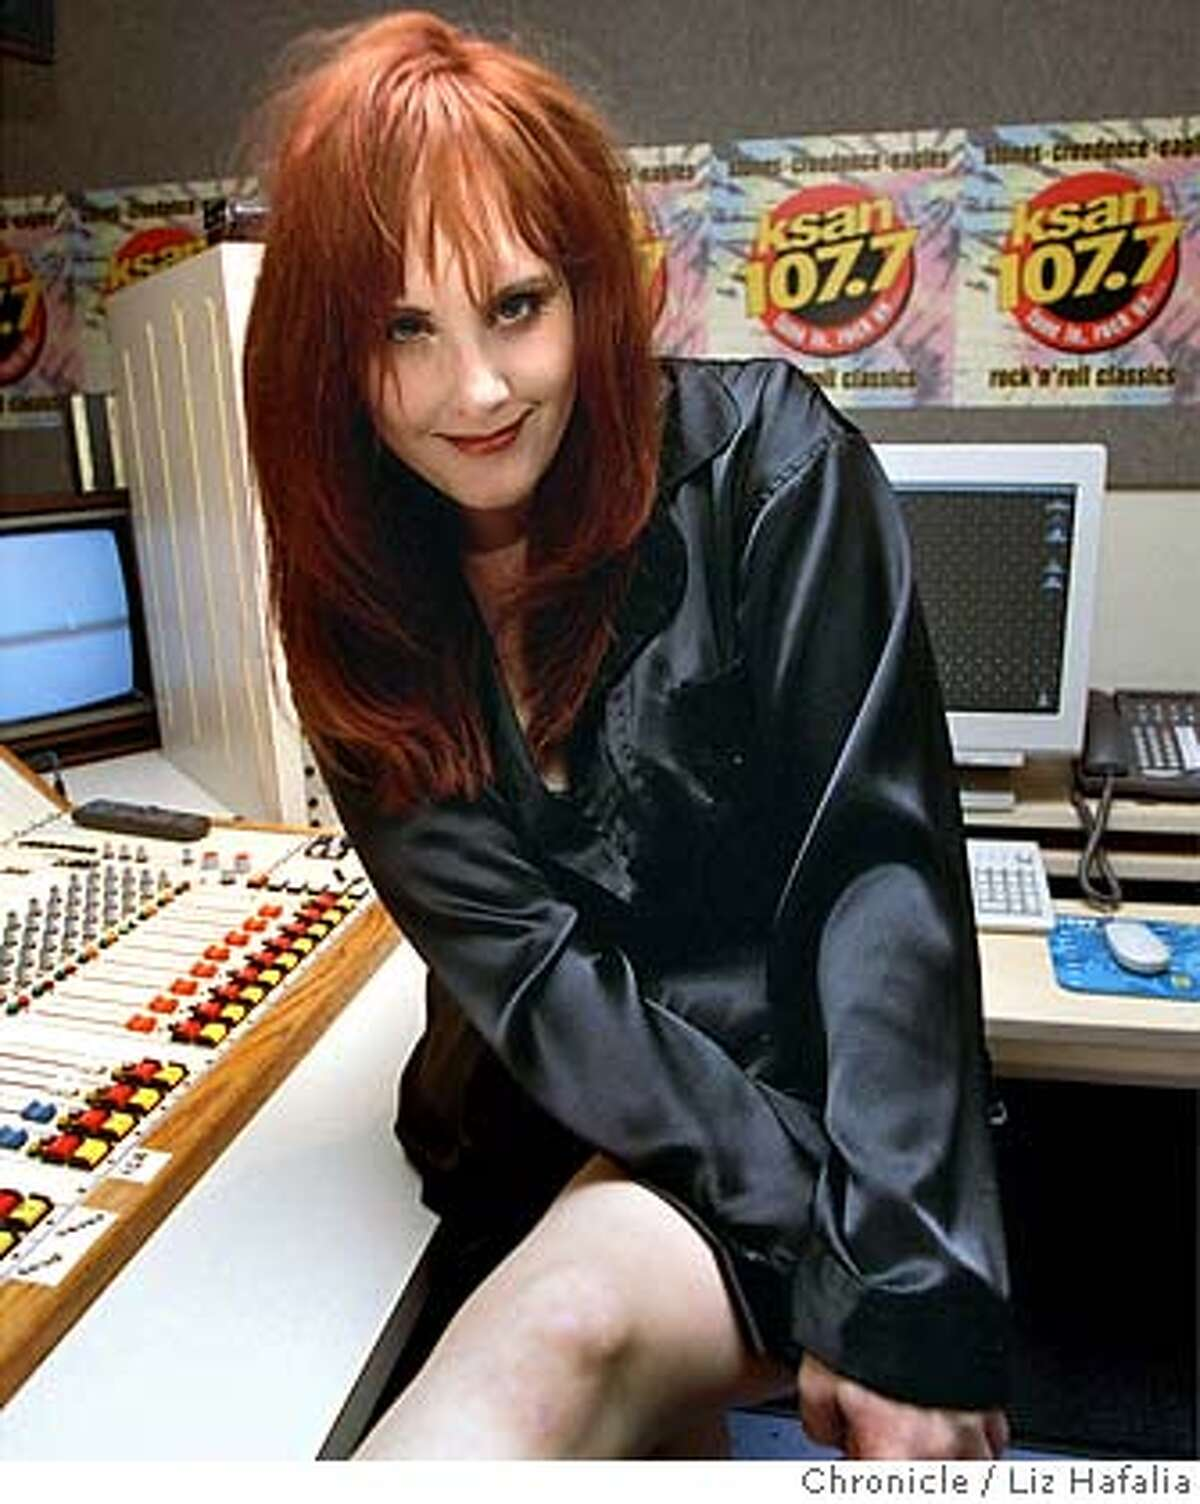 ###Live Caption:darian o'toole may 1999###Caption History:STYLE18b/C/10MAY99DD//LH--Morning DJ Darian O'Toole of 107.7 Ksan Radio, modeling a pair of black silk pajamas from Victoria's Secret. BY LIZ HAFALIA/THE CHRONICLE###Notes:###Special Instructions:CAT